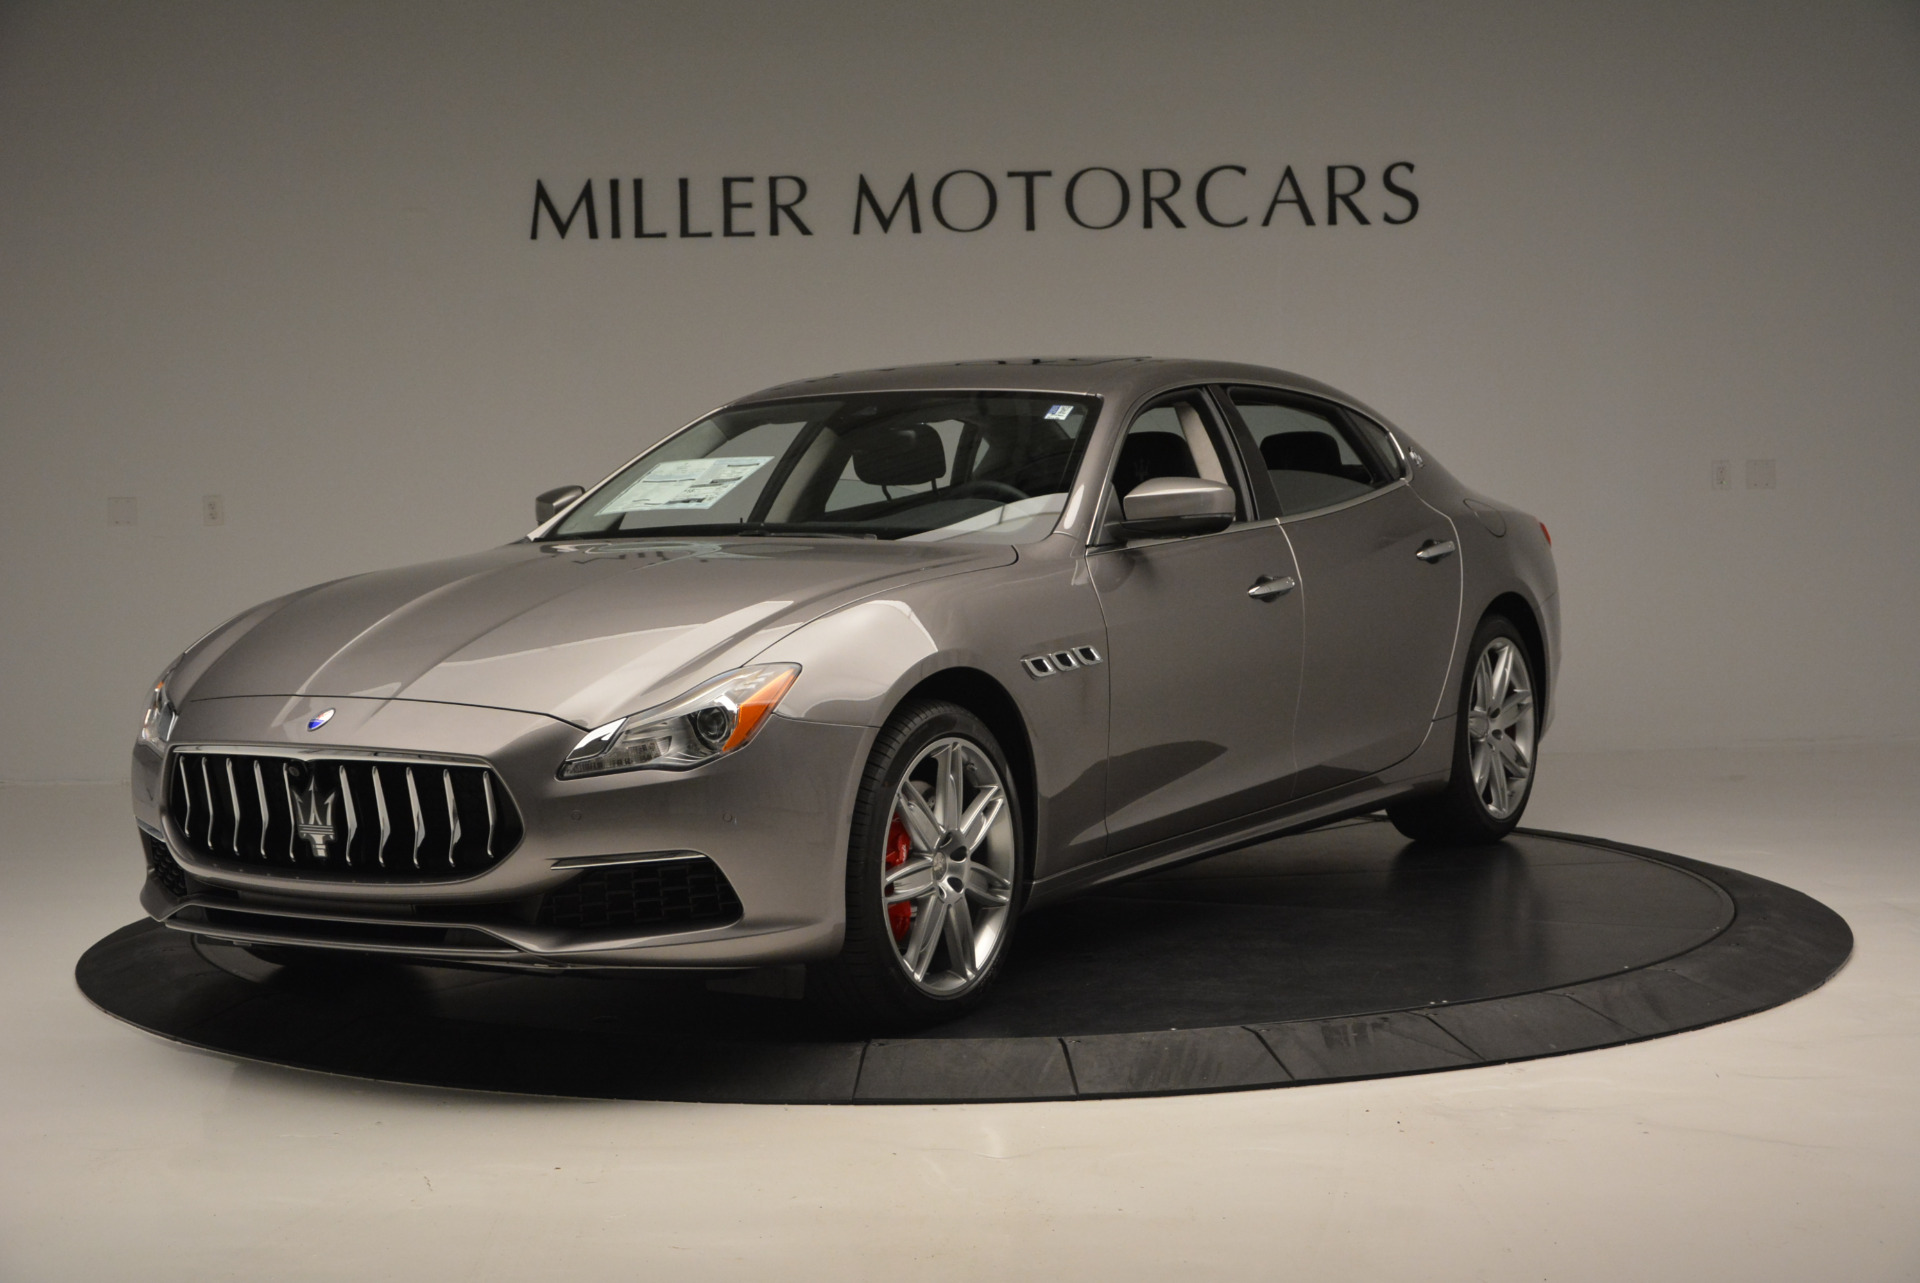 New 2017 Maserati Quattroporte S Q4 GranLusso for sale Sold at Bentley Greenwich in Greenwich CT 06830 1